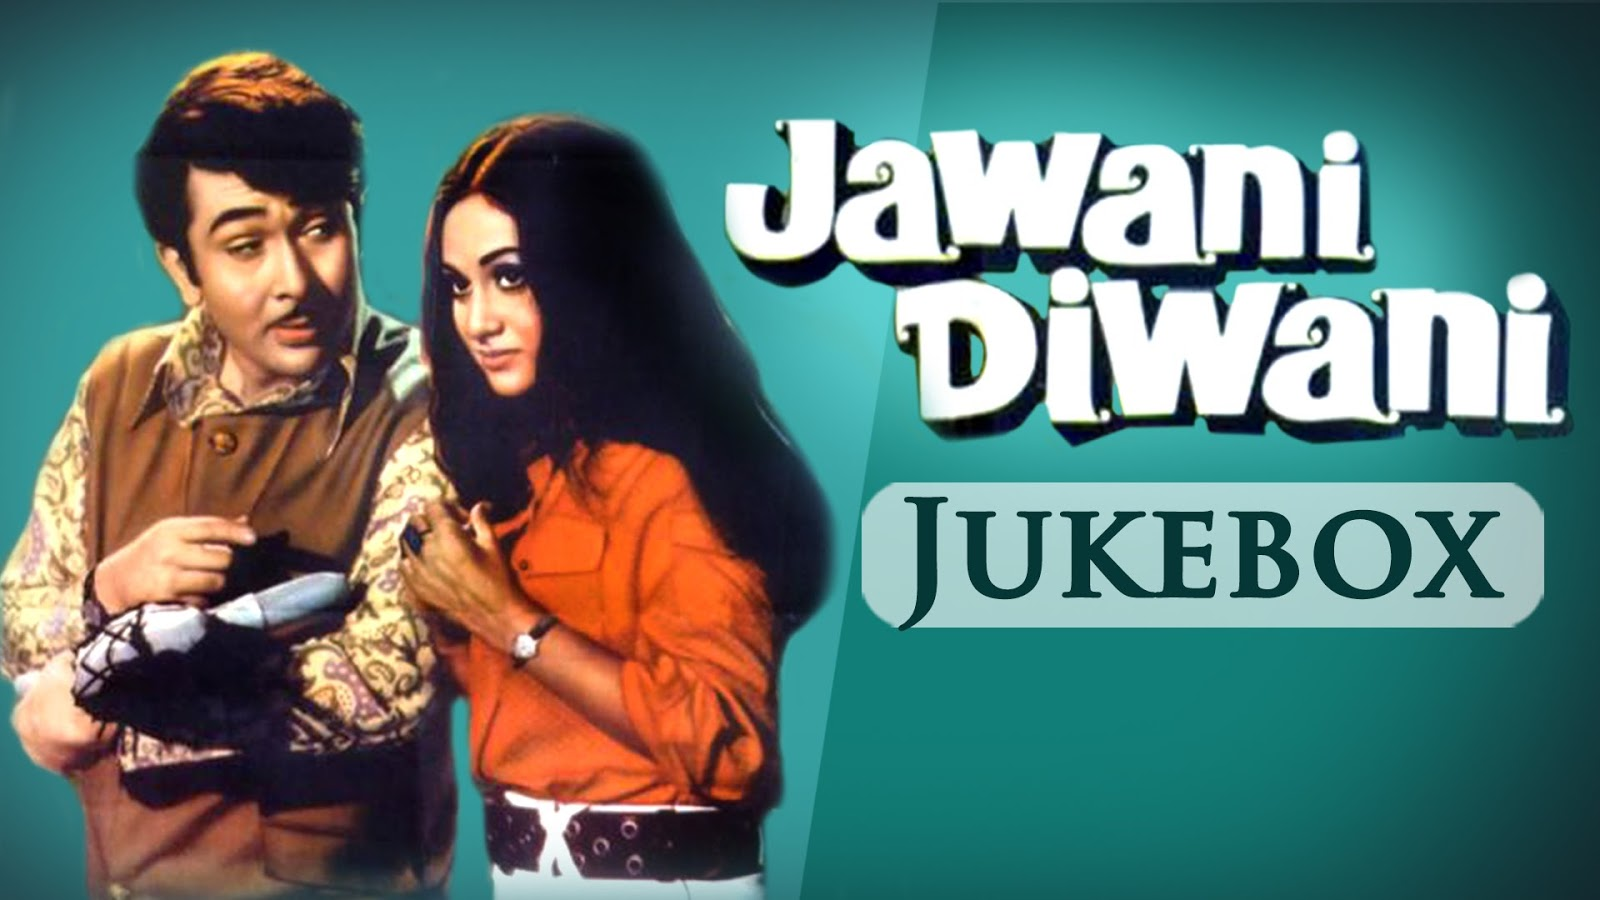 Hindi Film Jawani Diwani 1972